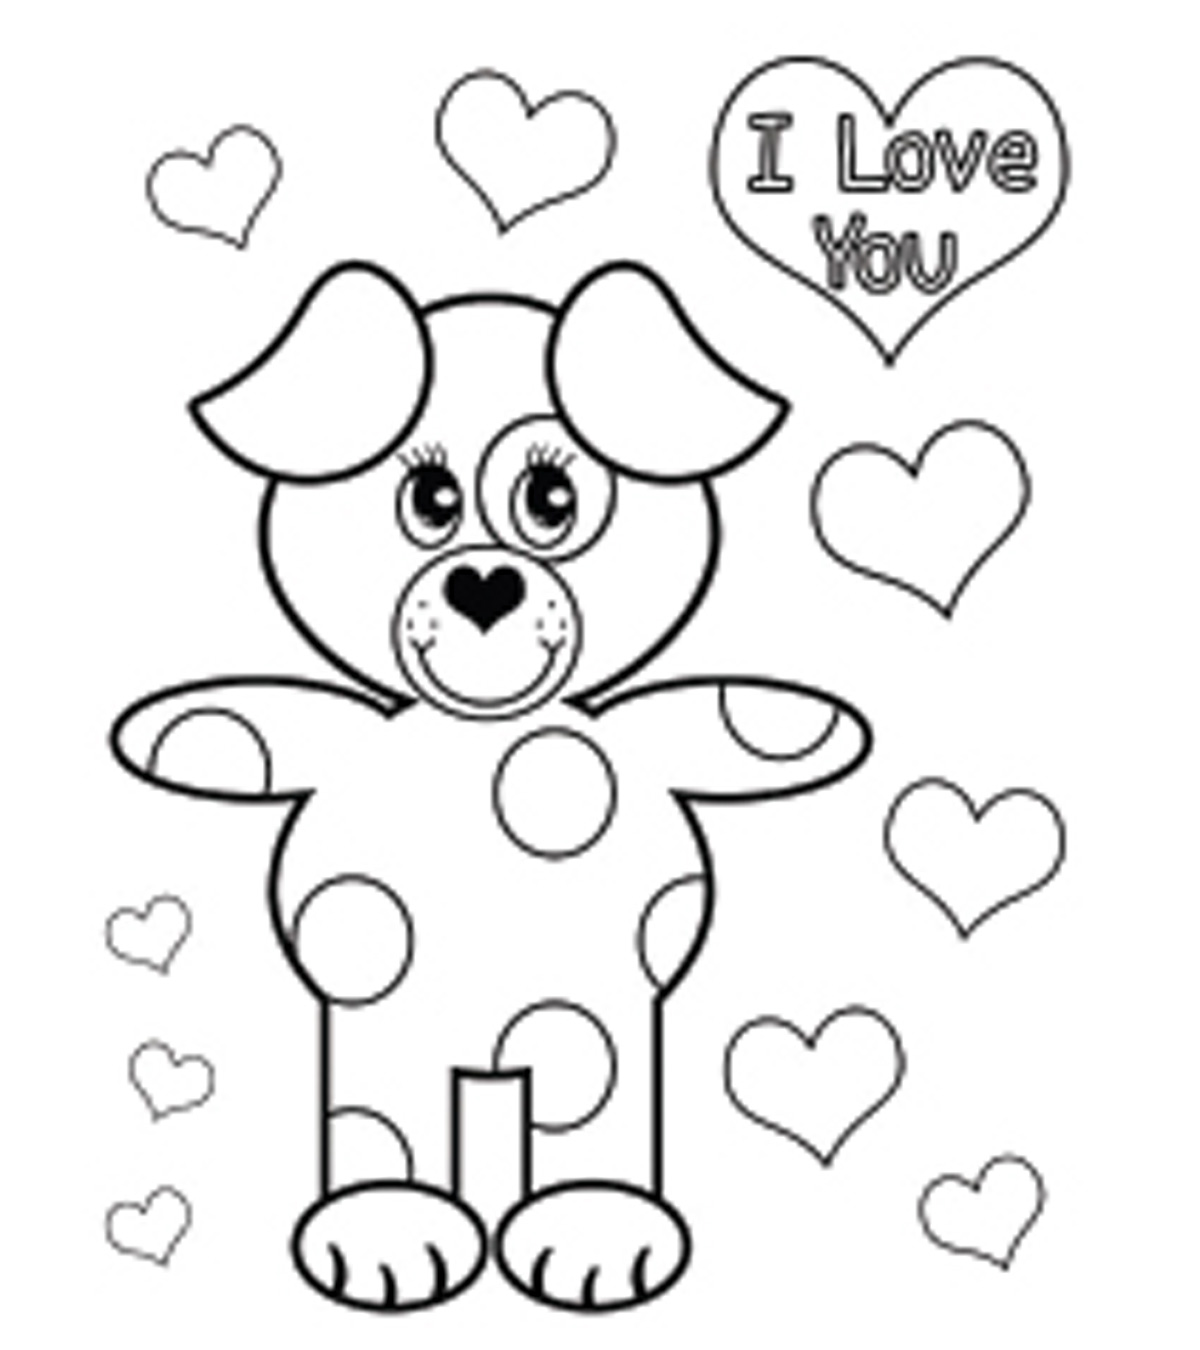 Top 8 Free Printable Valentines Day Coloring Pages Online